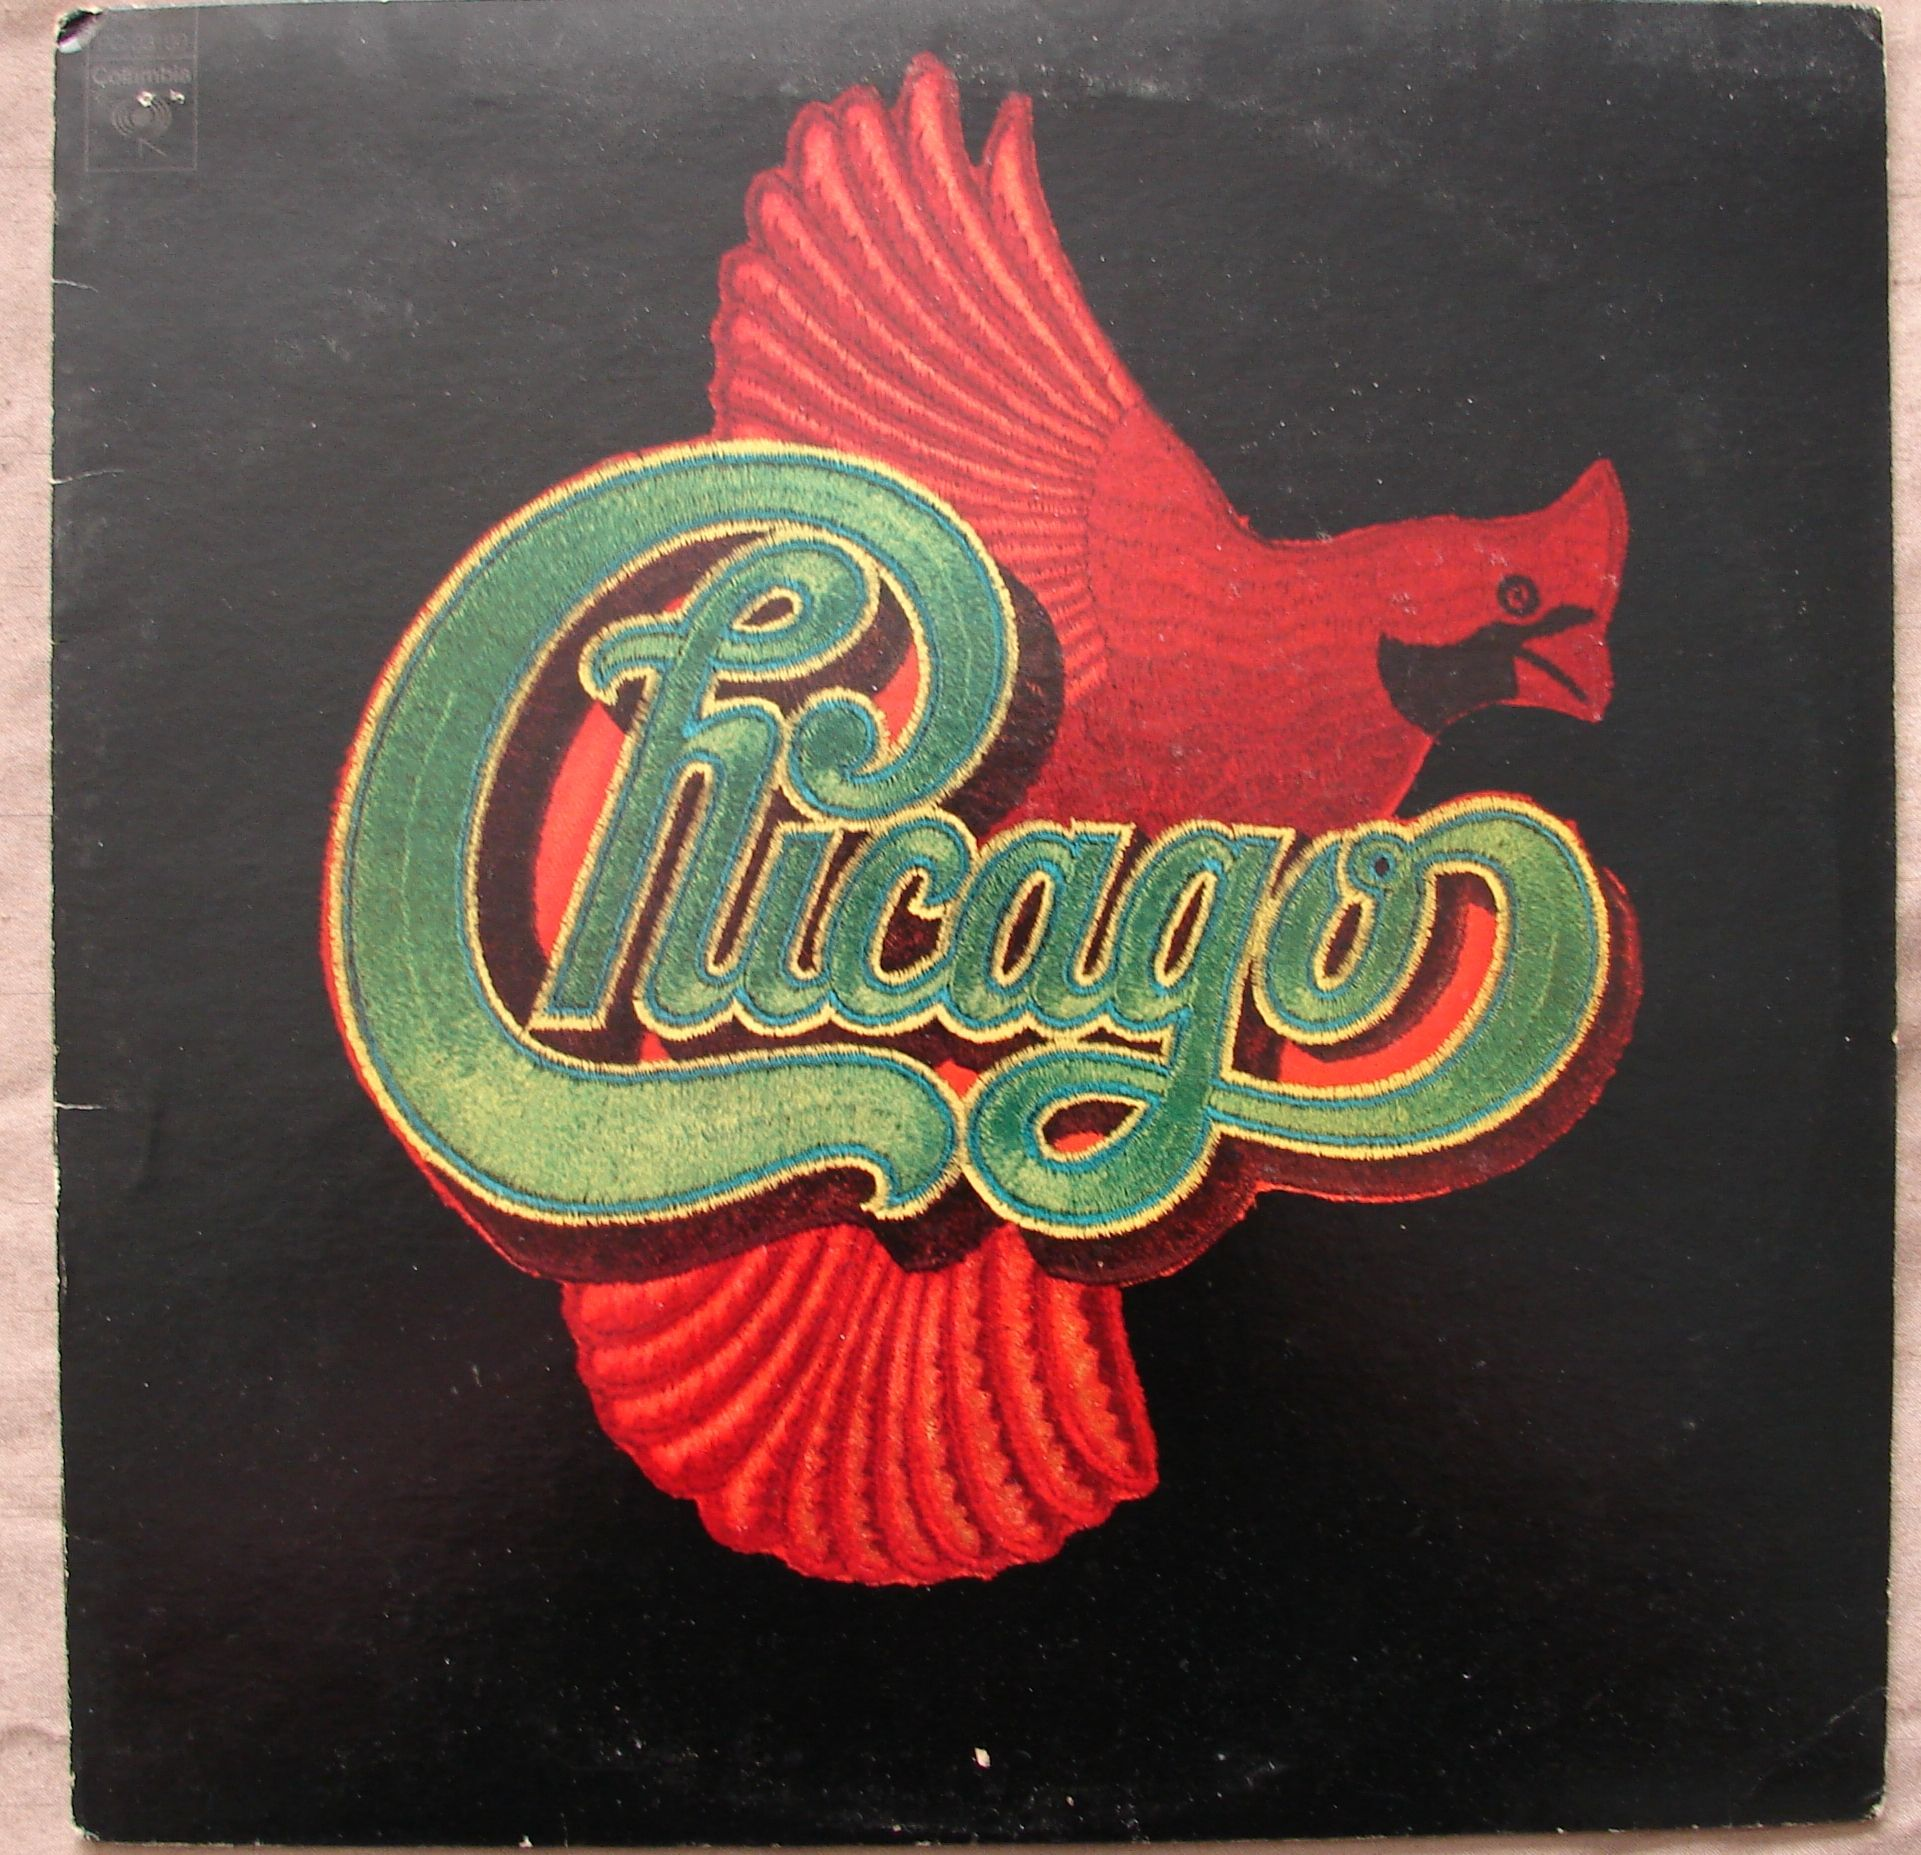 Chicago Chicago Viii Album Covers Classic Album Covers Album Art